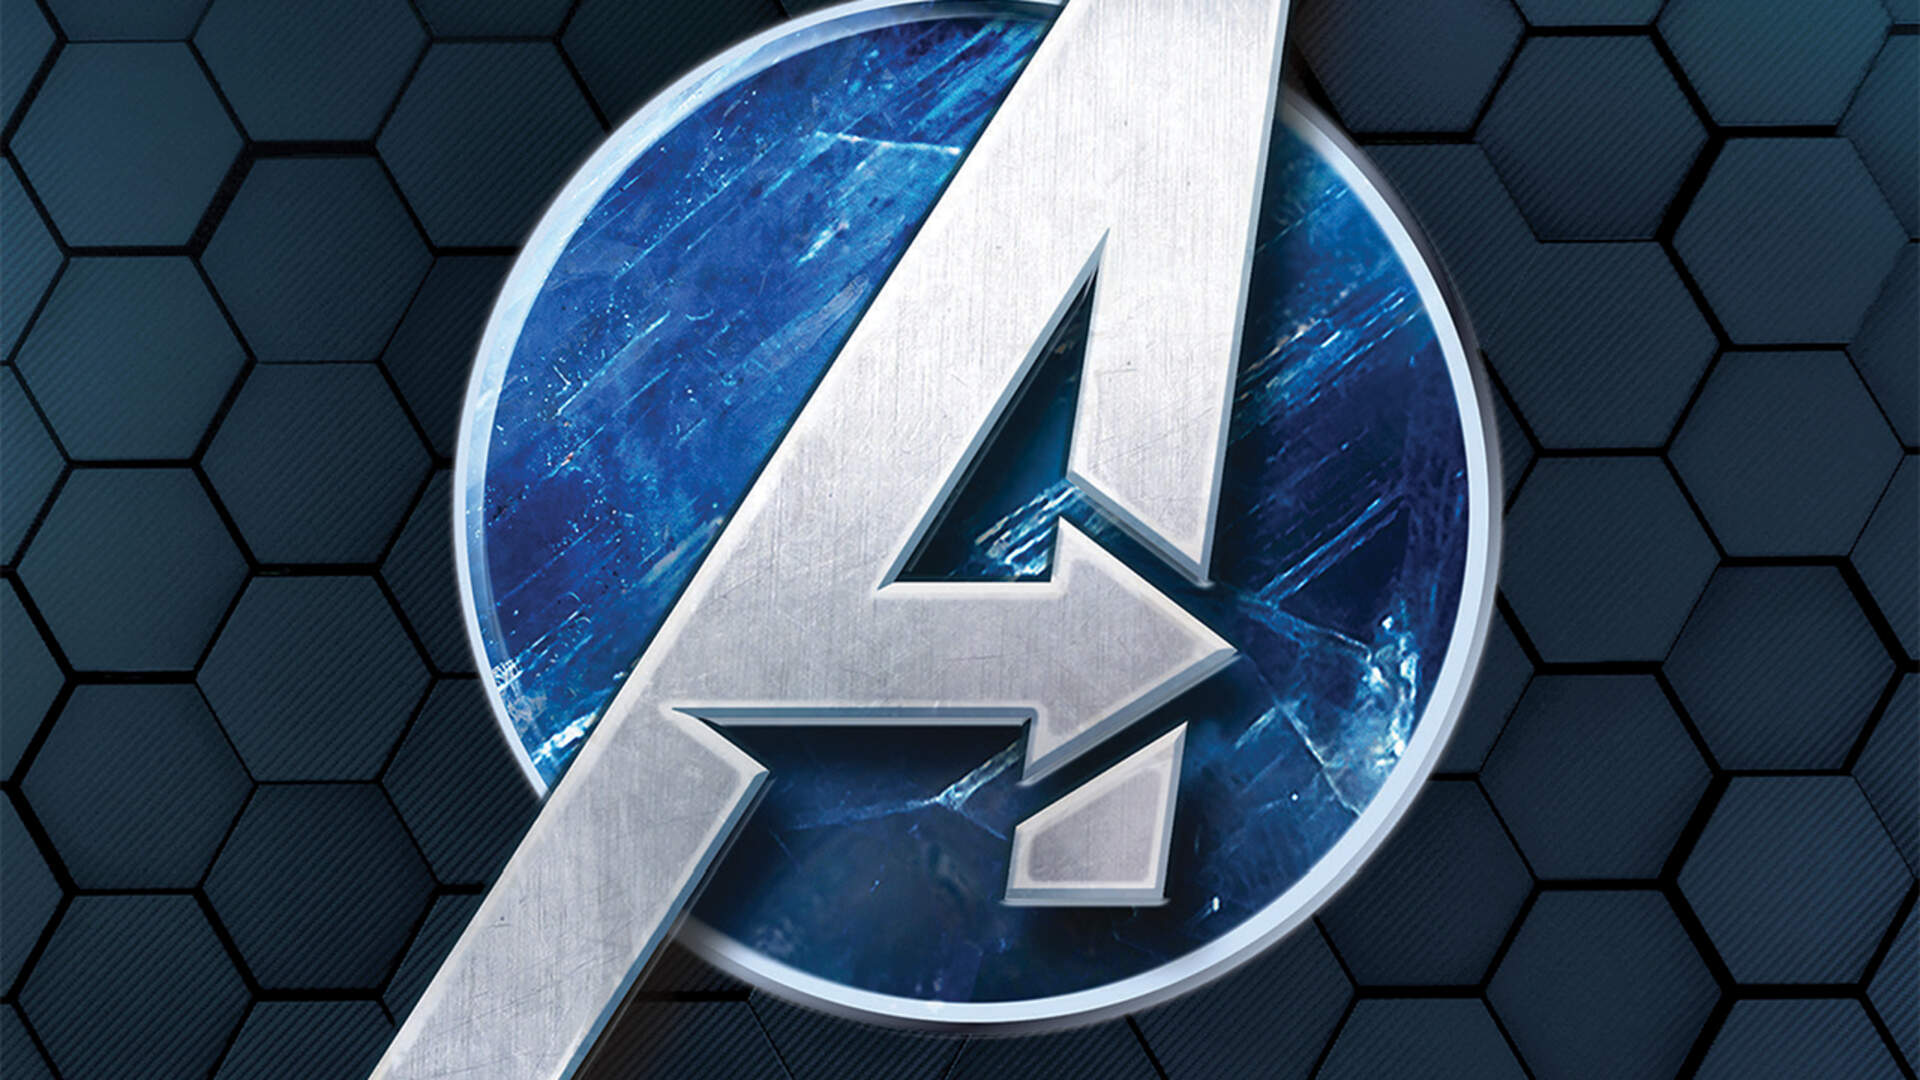 Marvel's Avengers' Gameplay Nails the Scope and Spectacle, But Important Questions Remain Unanswered